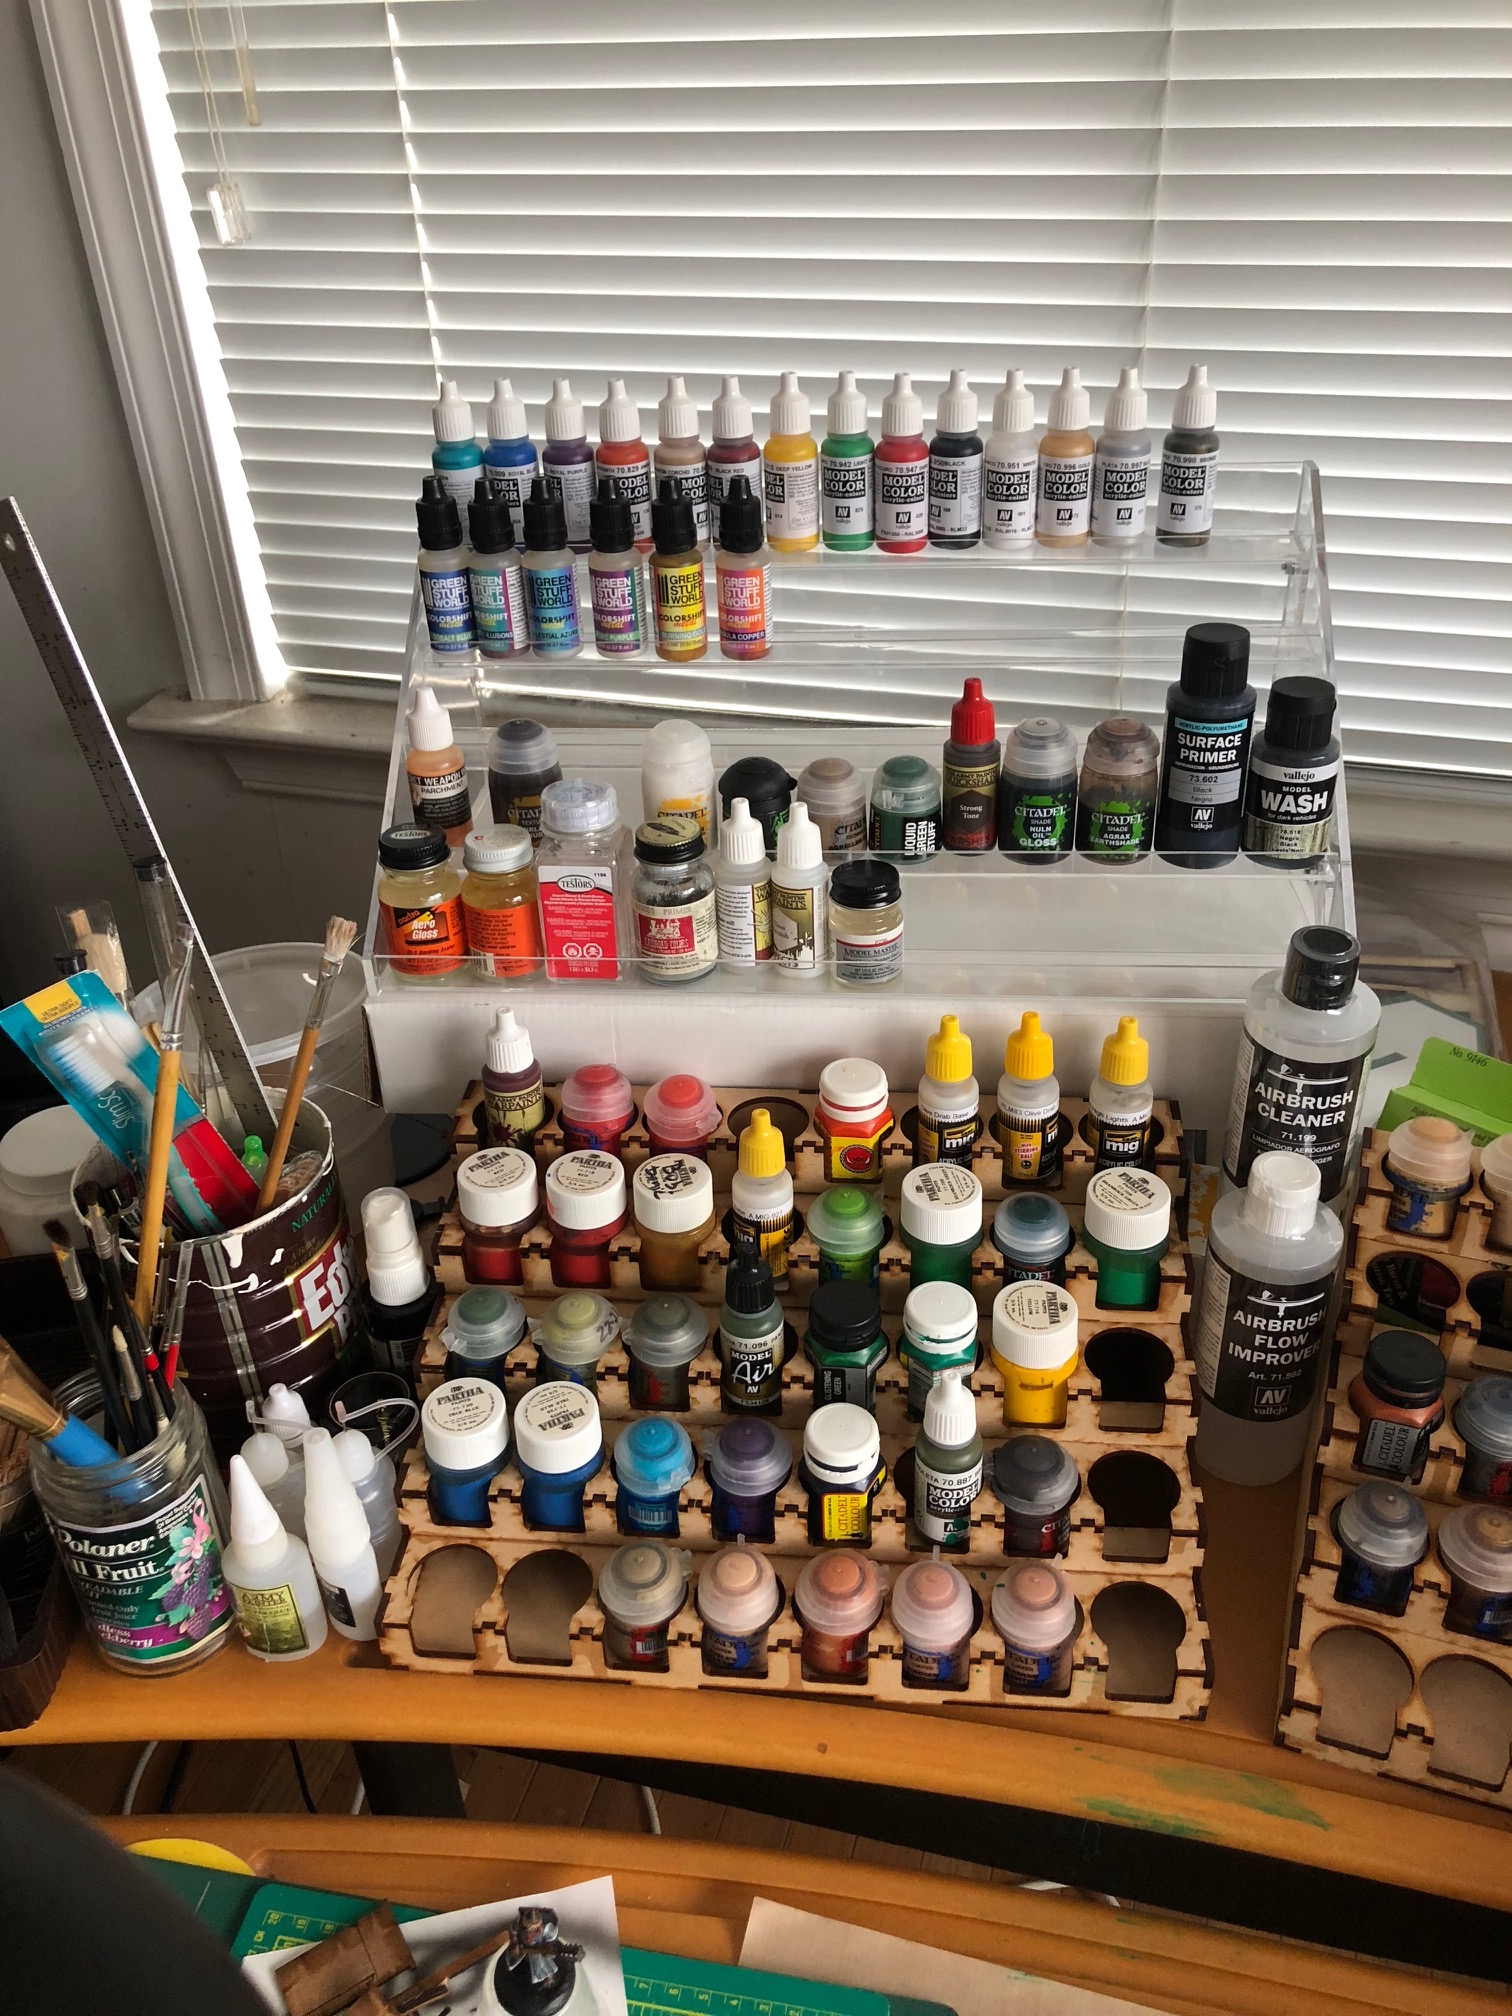 Tips of the Week: Choosing a Sewing Needle, Cheap Craft Shelving, Working with Epoxies, and Generating Gears